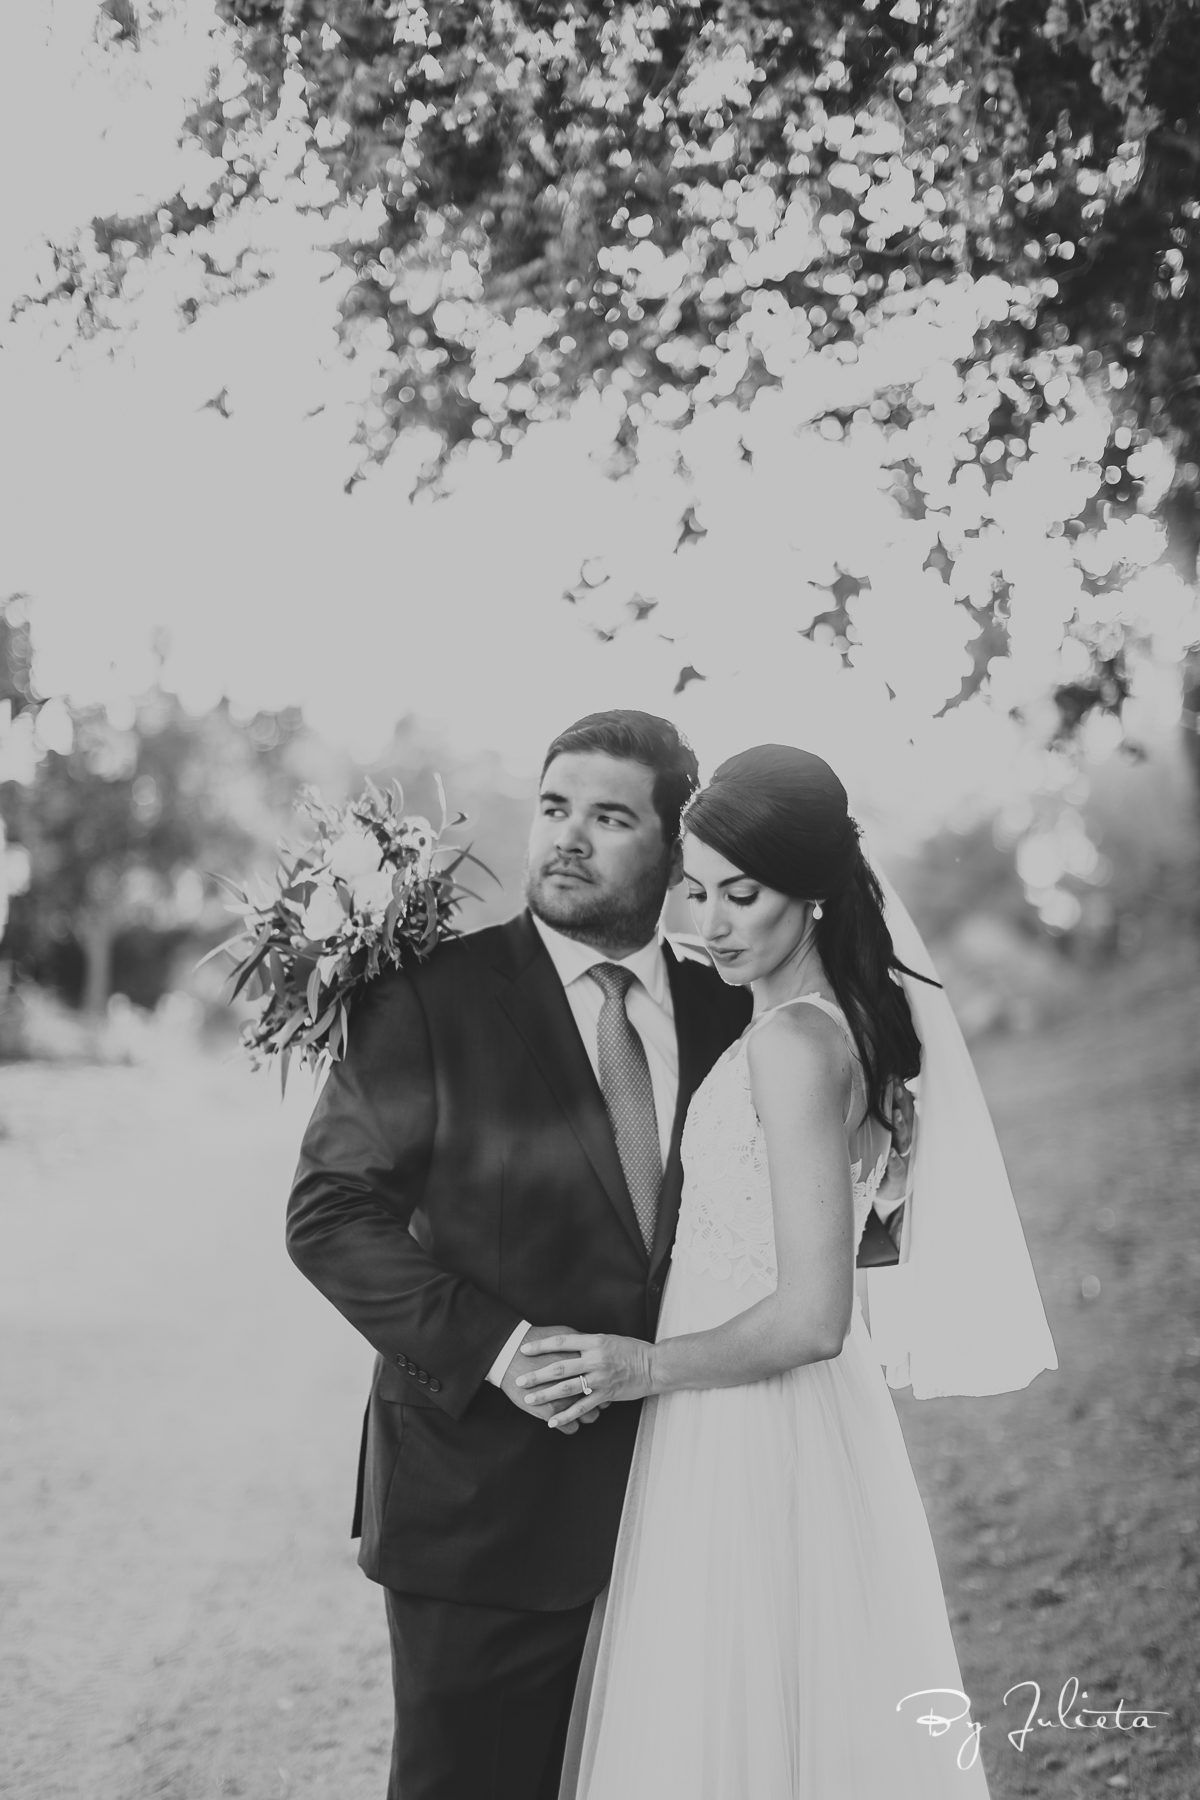 FlorasFarmWedding.L+S.JulietaAmezcuaPhotography.(440of750).jpg